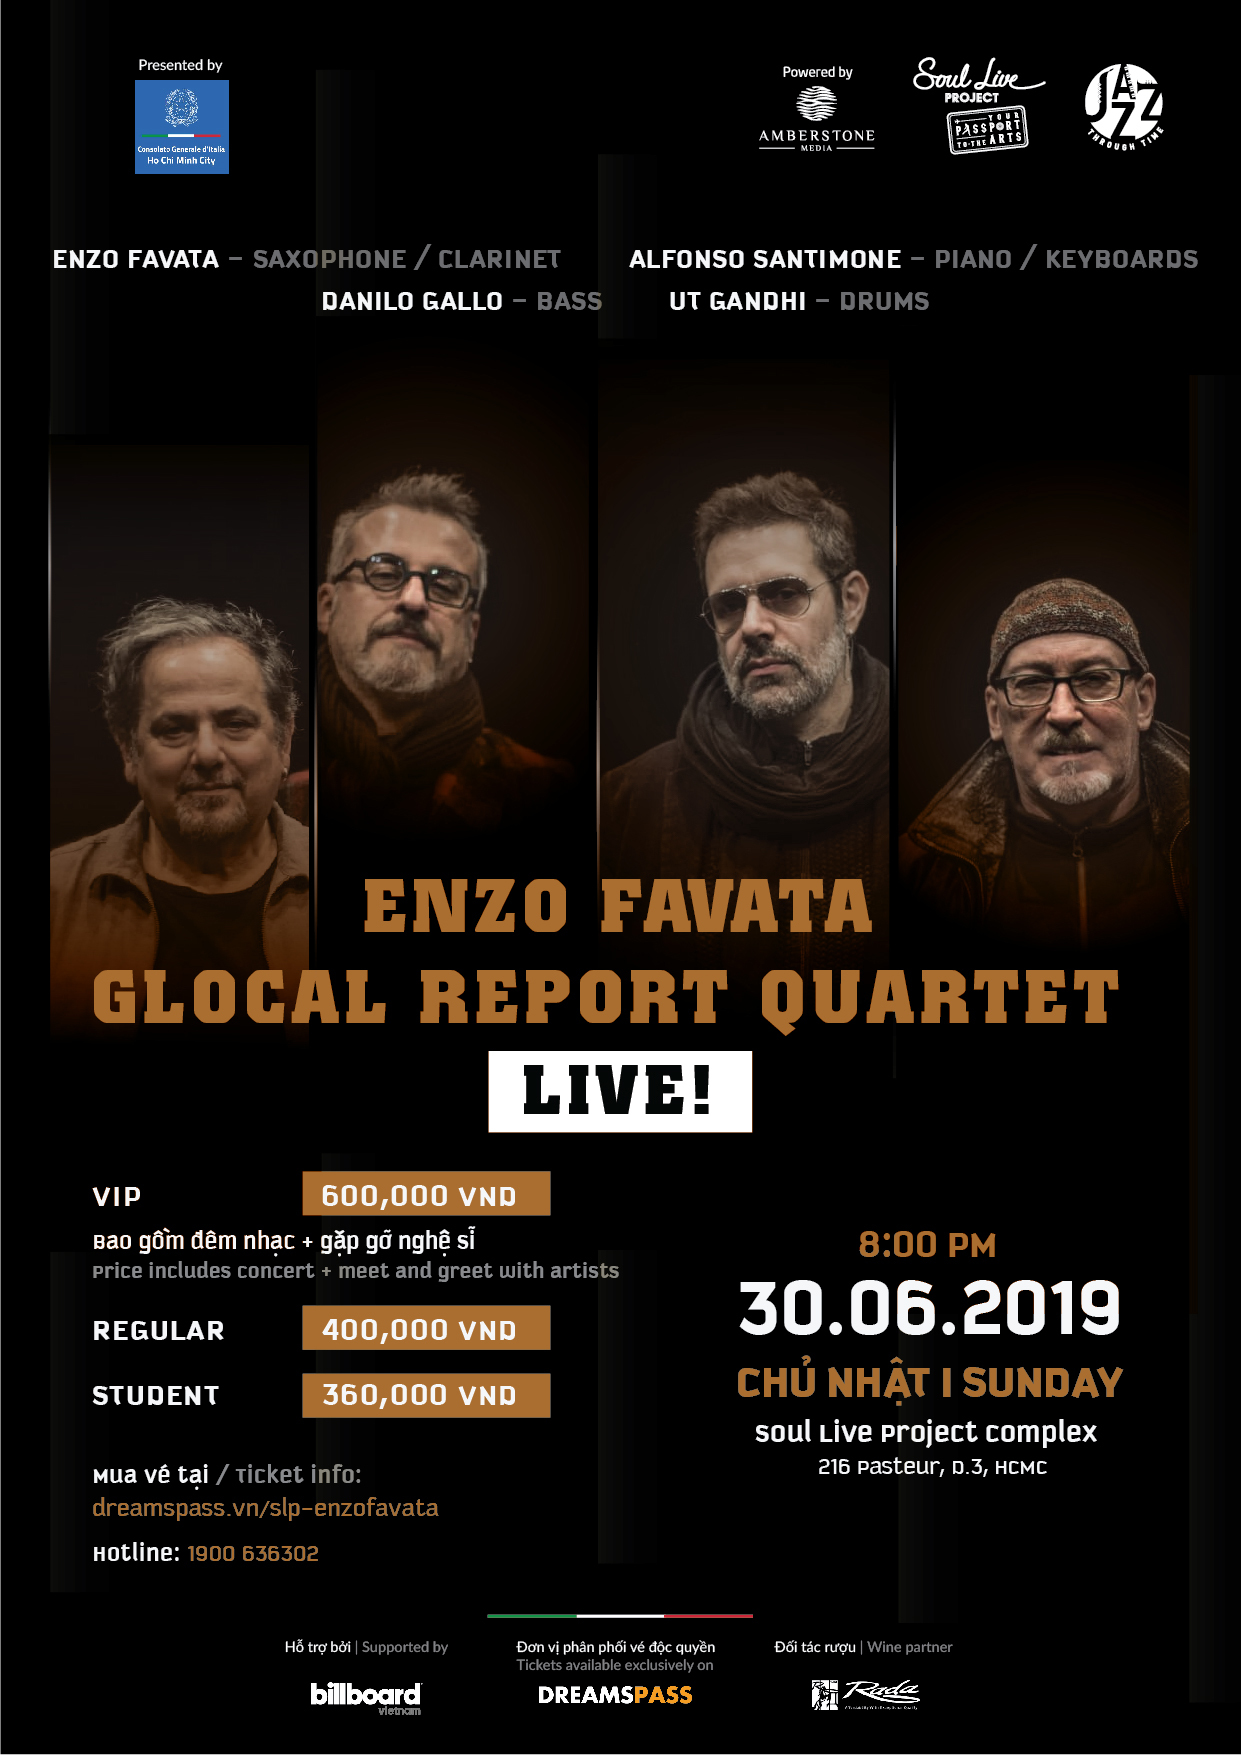 World-renowned Italian saxophonist Enzo Favata to join SPYO's concert in HCM City